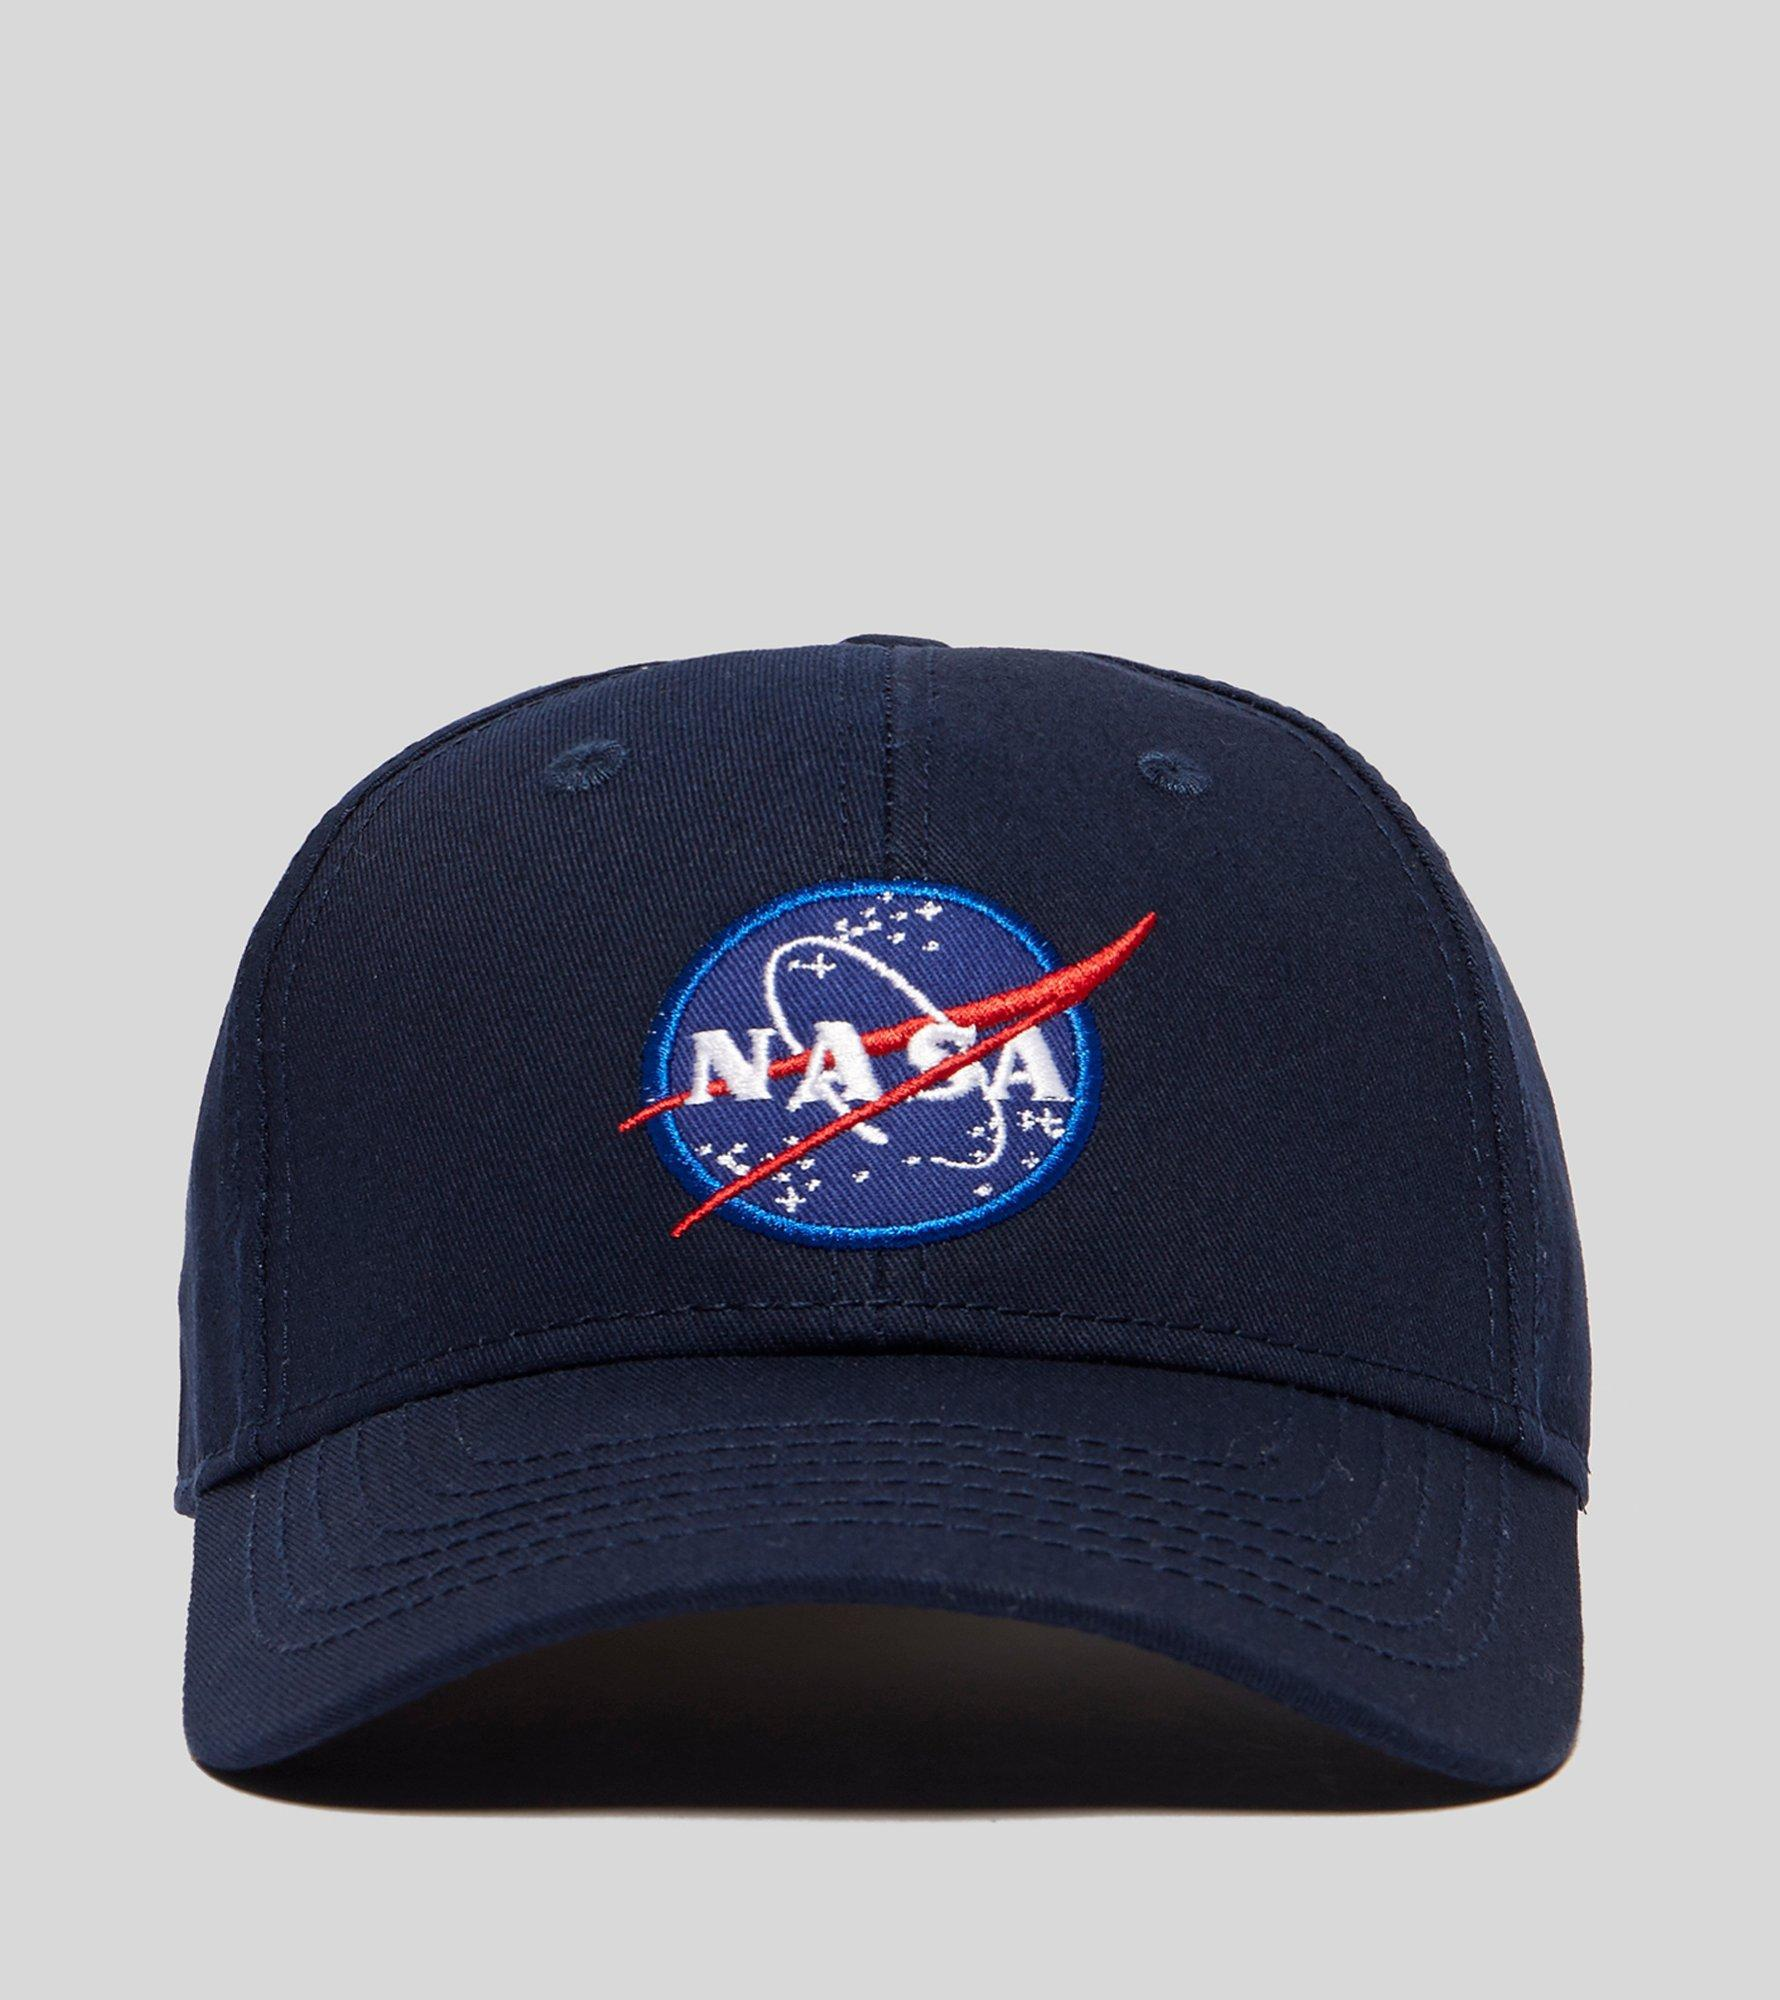 7fbd06d4596 Alpha Industries Nasa Peak Cap in Blue for Men - Lyst